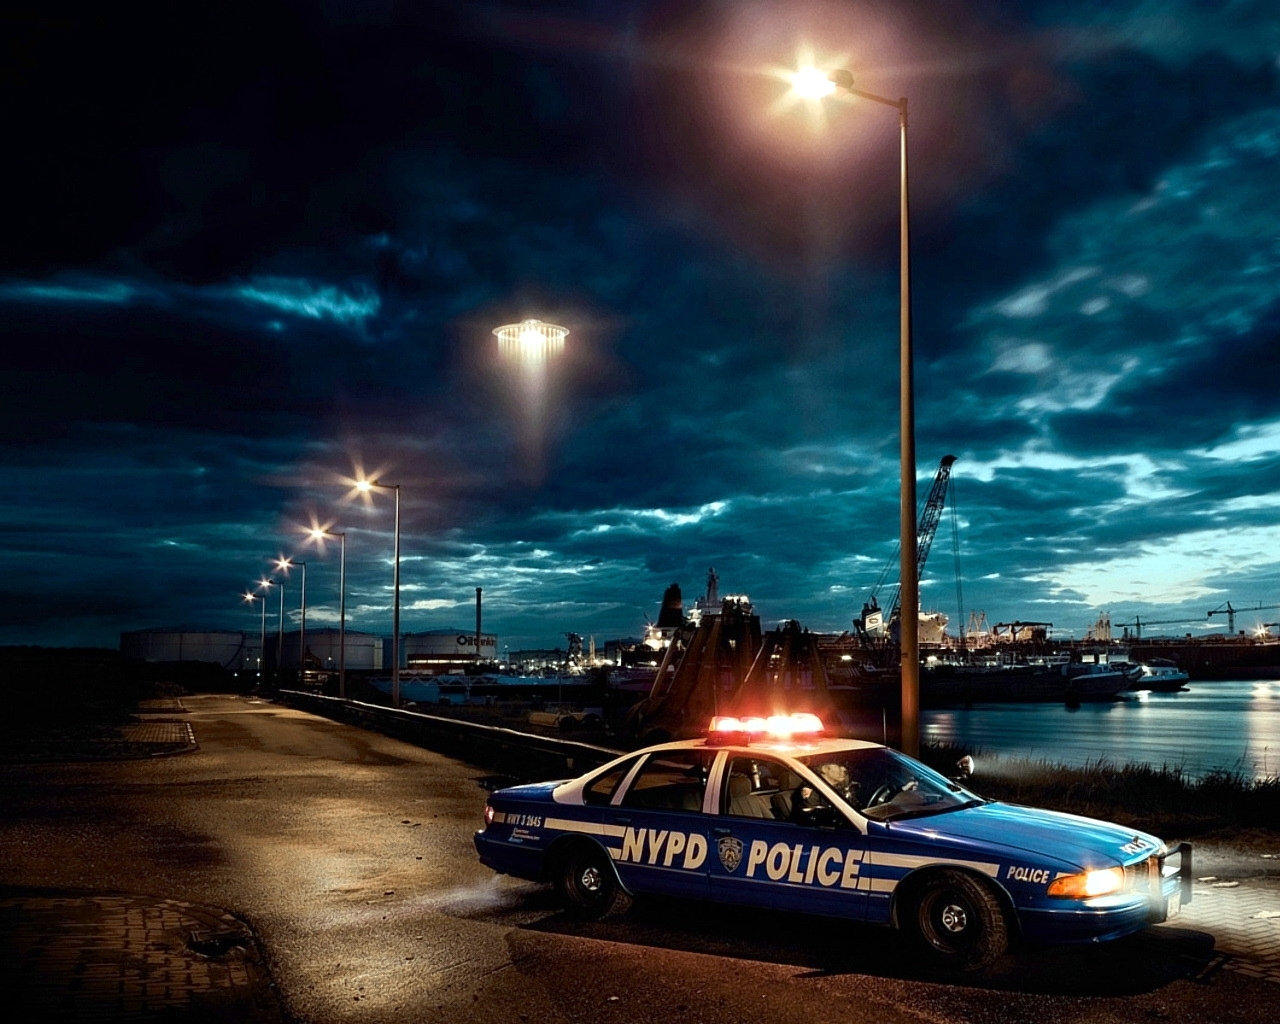 Police Wallpapers